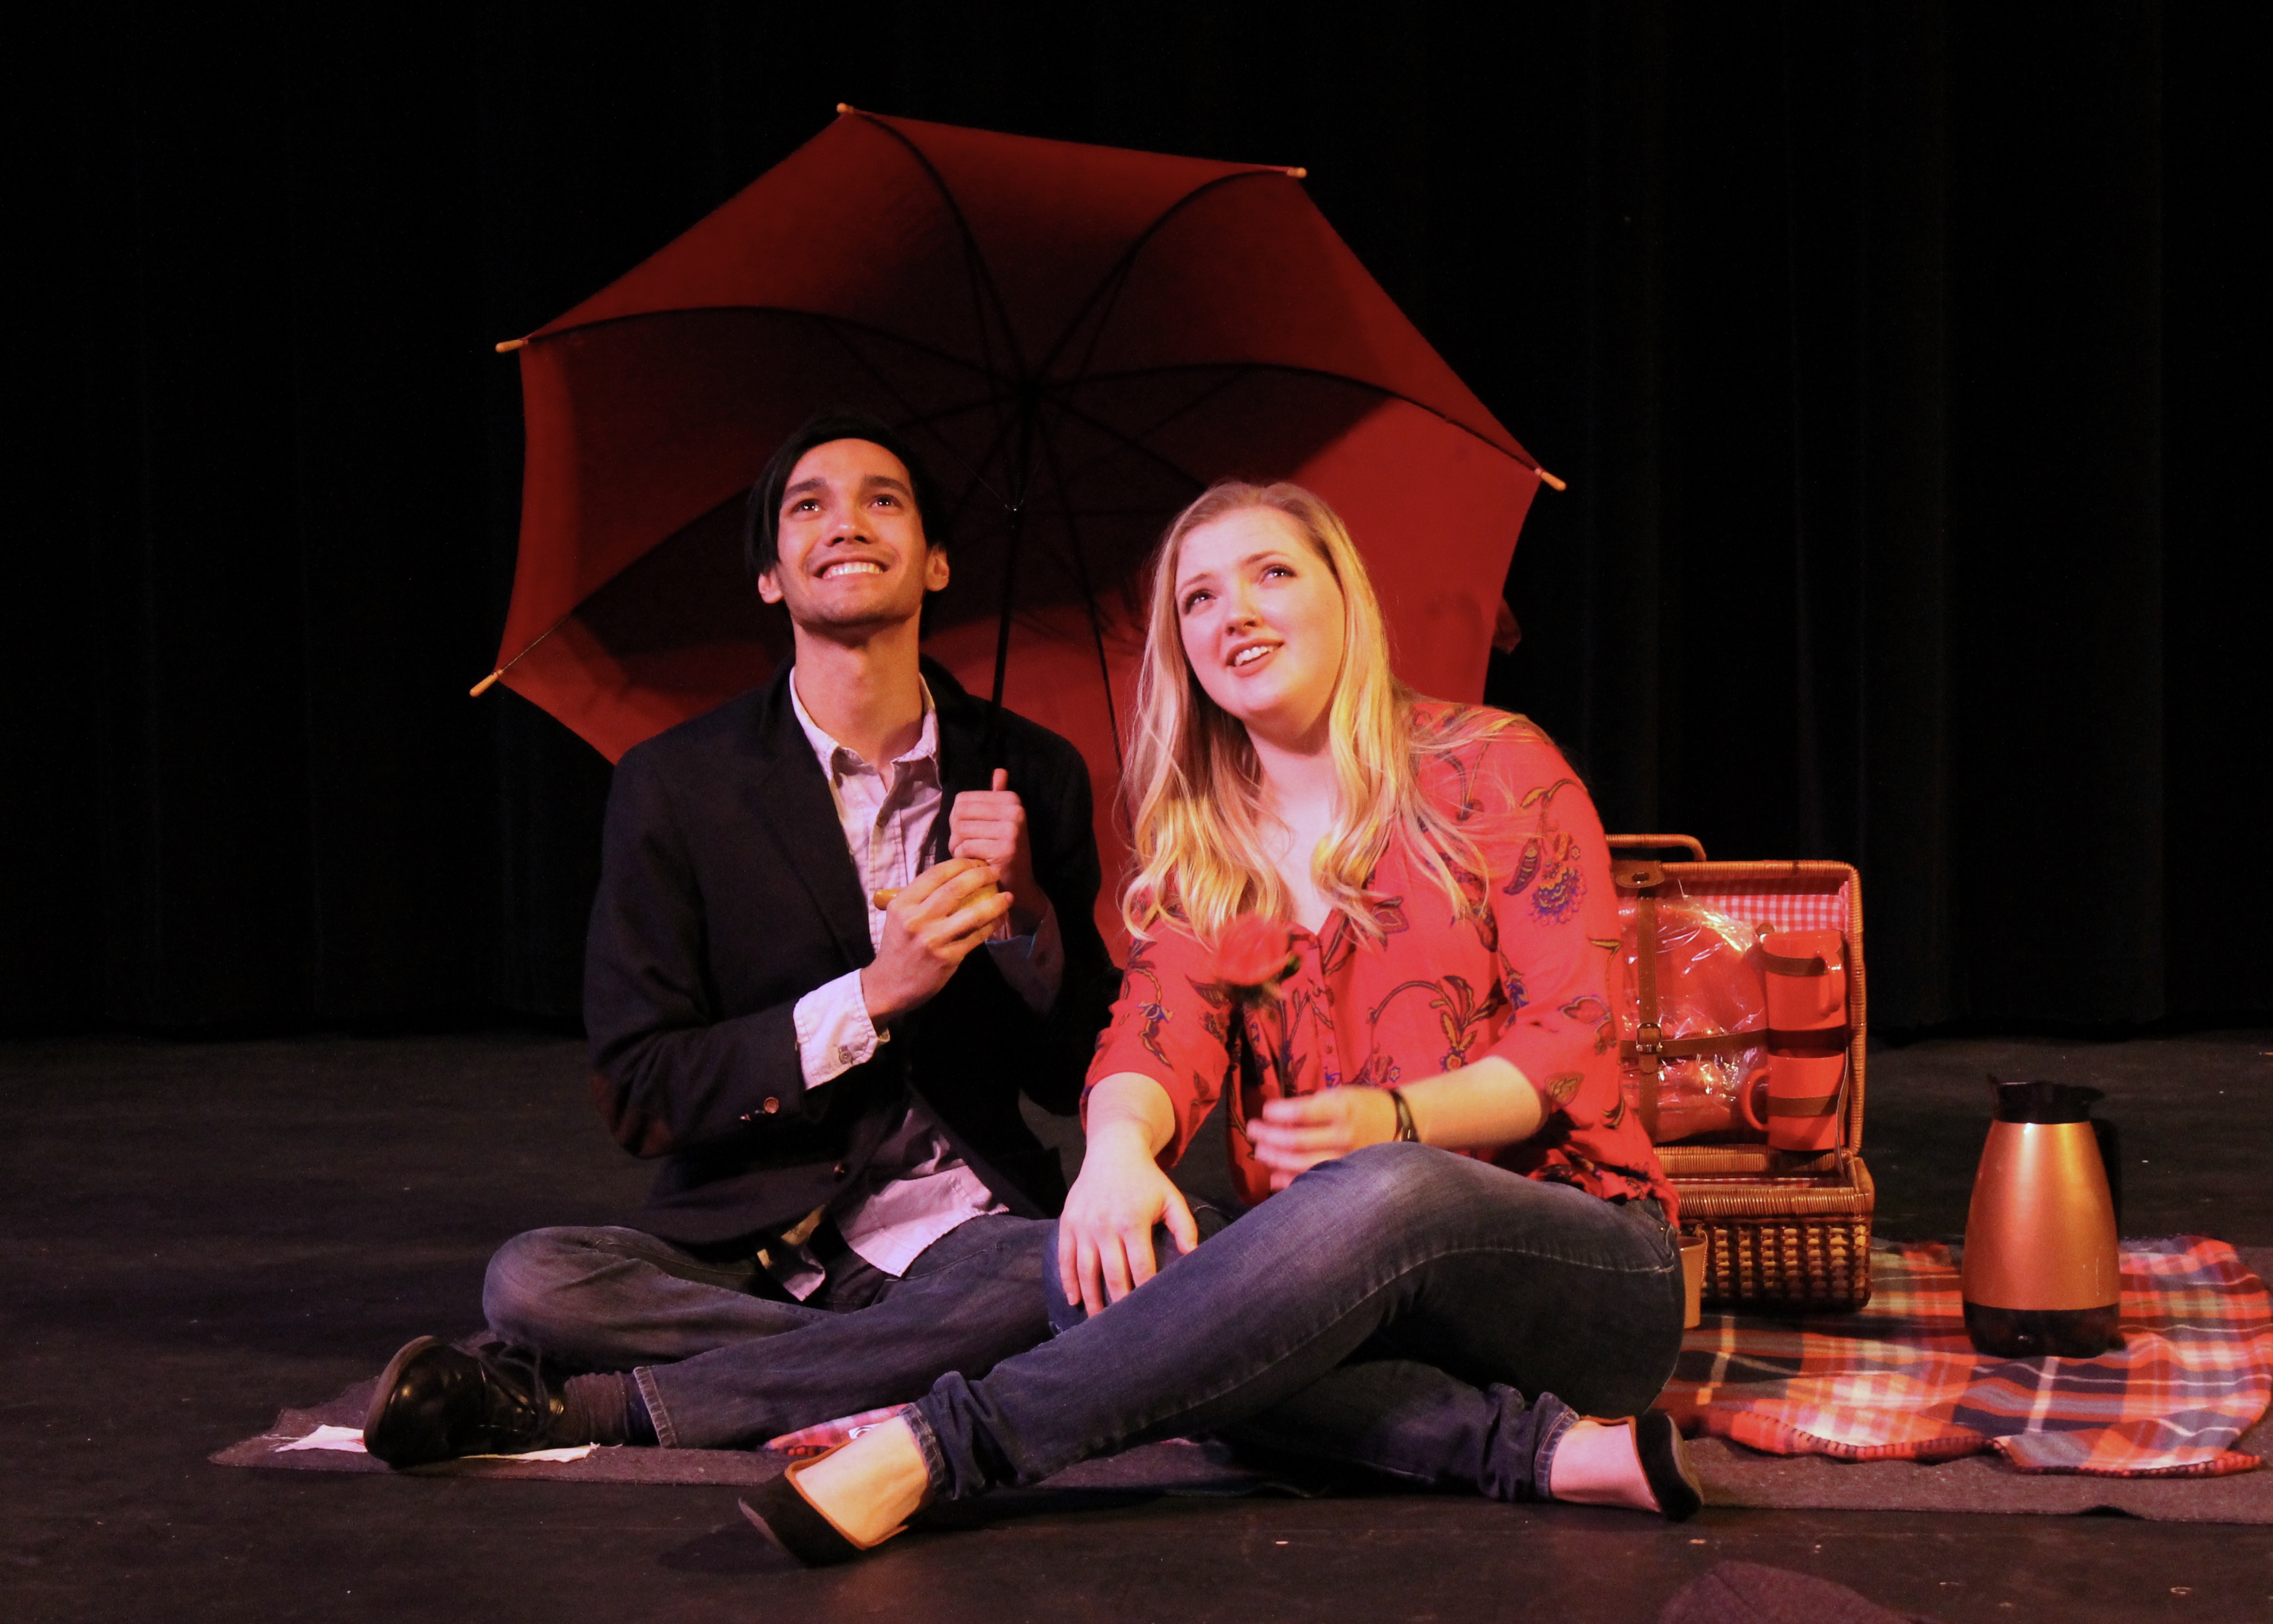 Luke Cariaga and Sydney Scott starred in the one act play directed by Samantha Kuneman. Photo by Allyson Hazelrigg.